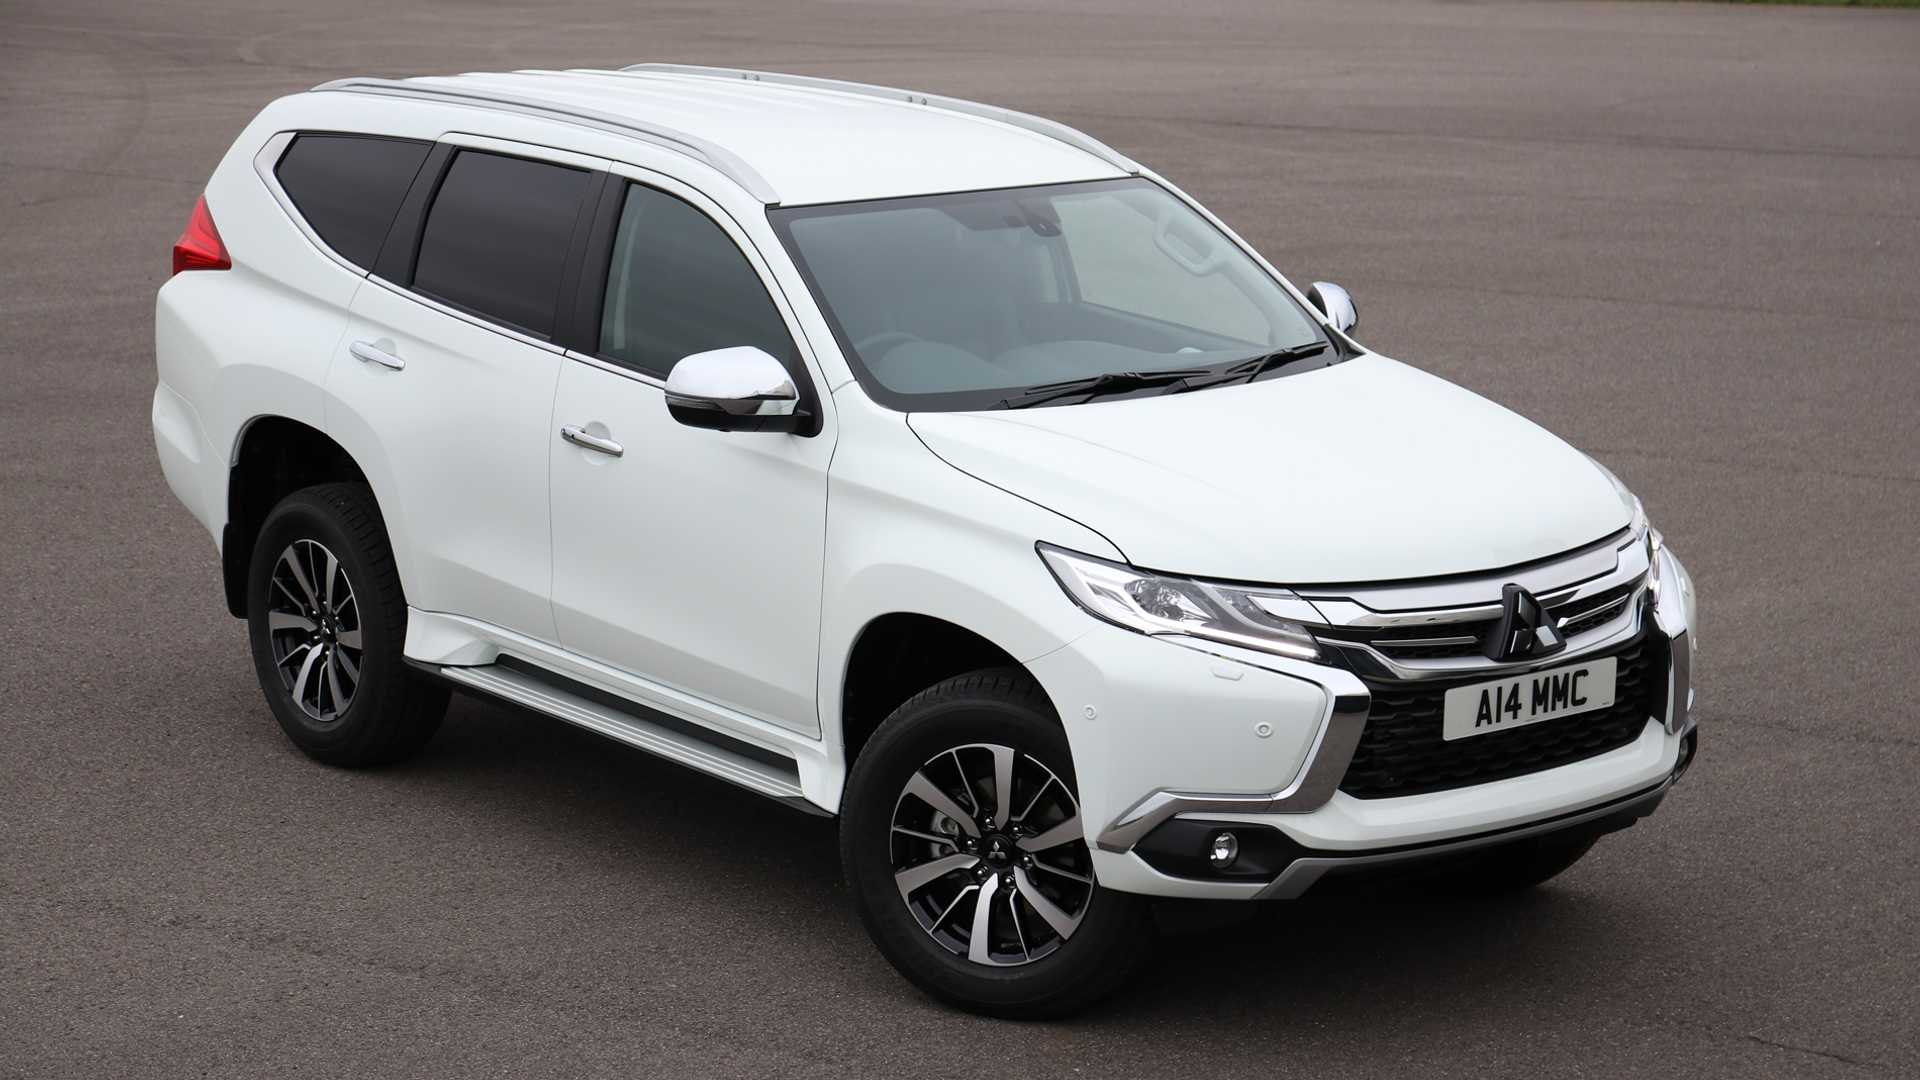 56 Best Review 2019 Mitsubishi Shogun Ratings with 2019 Mitsubishi Shogun